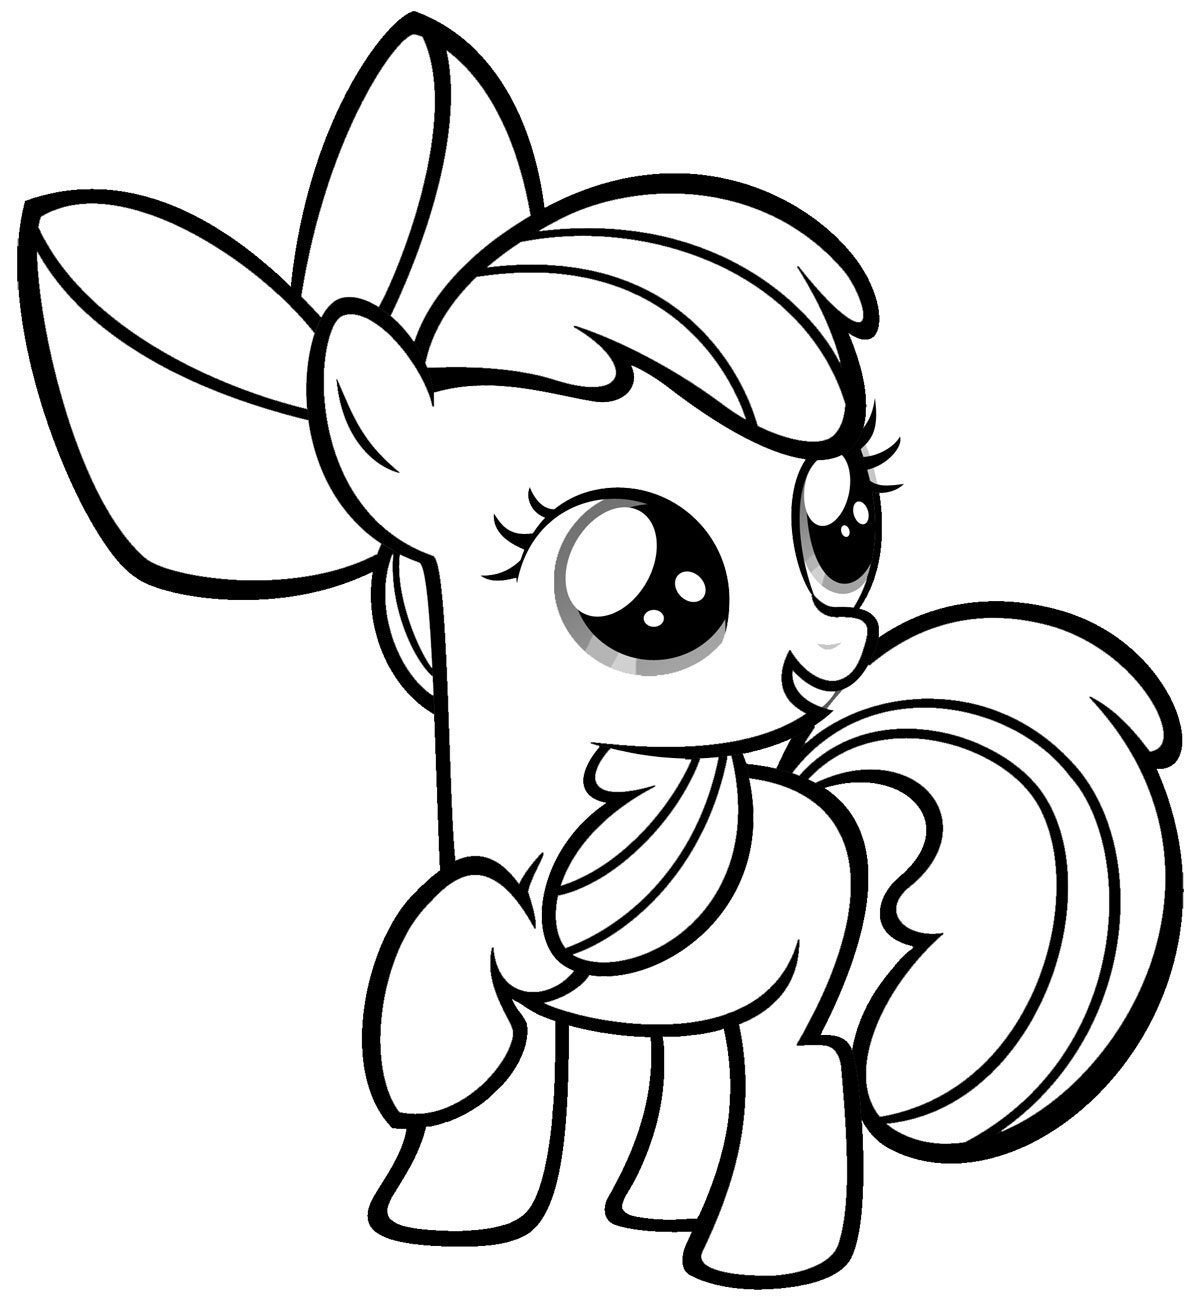 Awesome Pony Coloring Ideas Coloring Page Design zaenalus